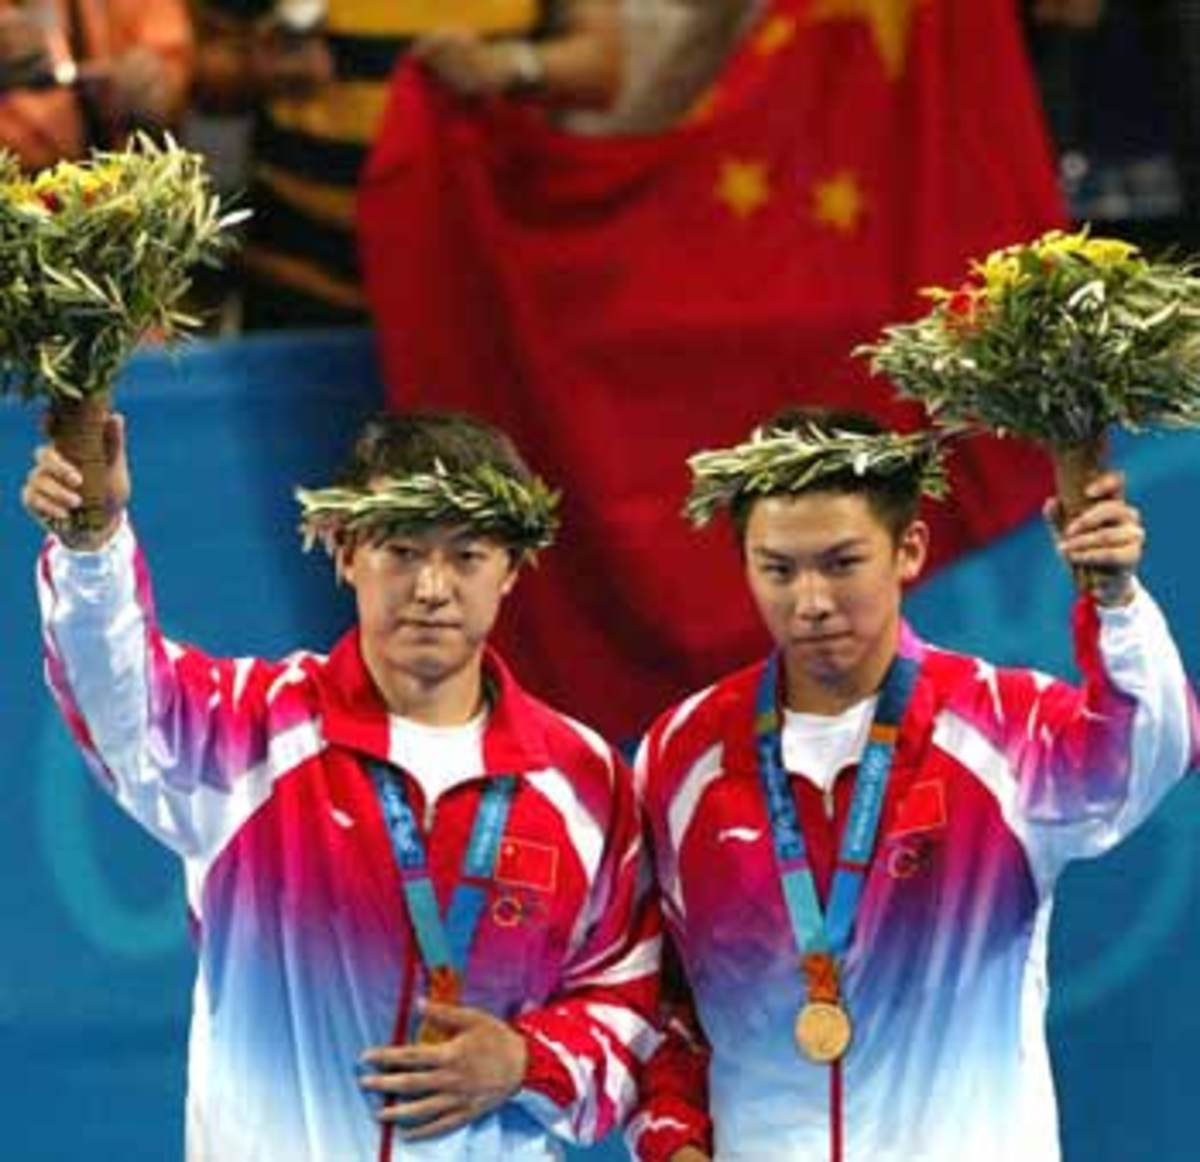 2004 Athens Olympic mens doubles champions -Ping Pong and Table Tennis Difference, History, Fun Facts